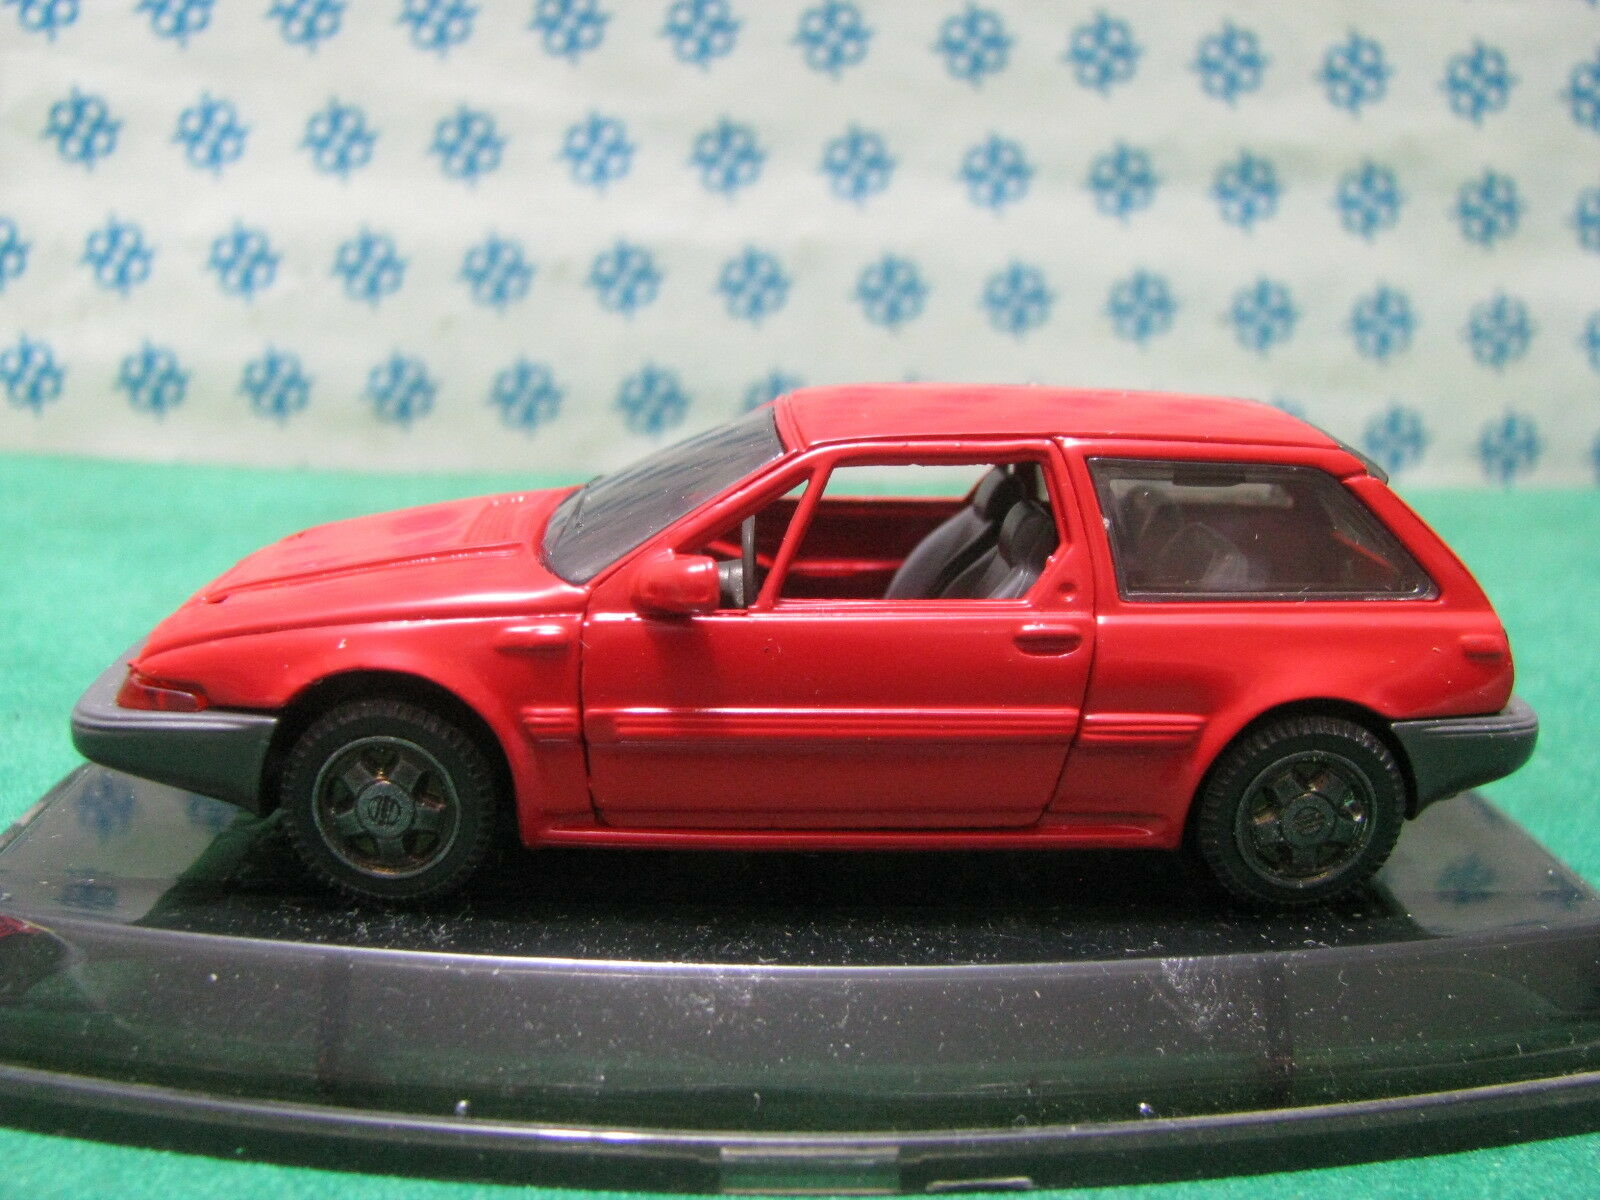 Vintage - VOLVO 480 ES - 1 43 43 43 AHC Models Mint in Box d1d741